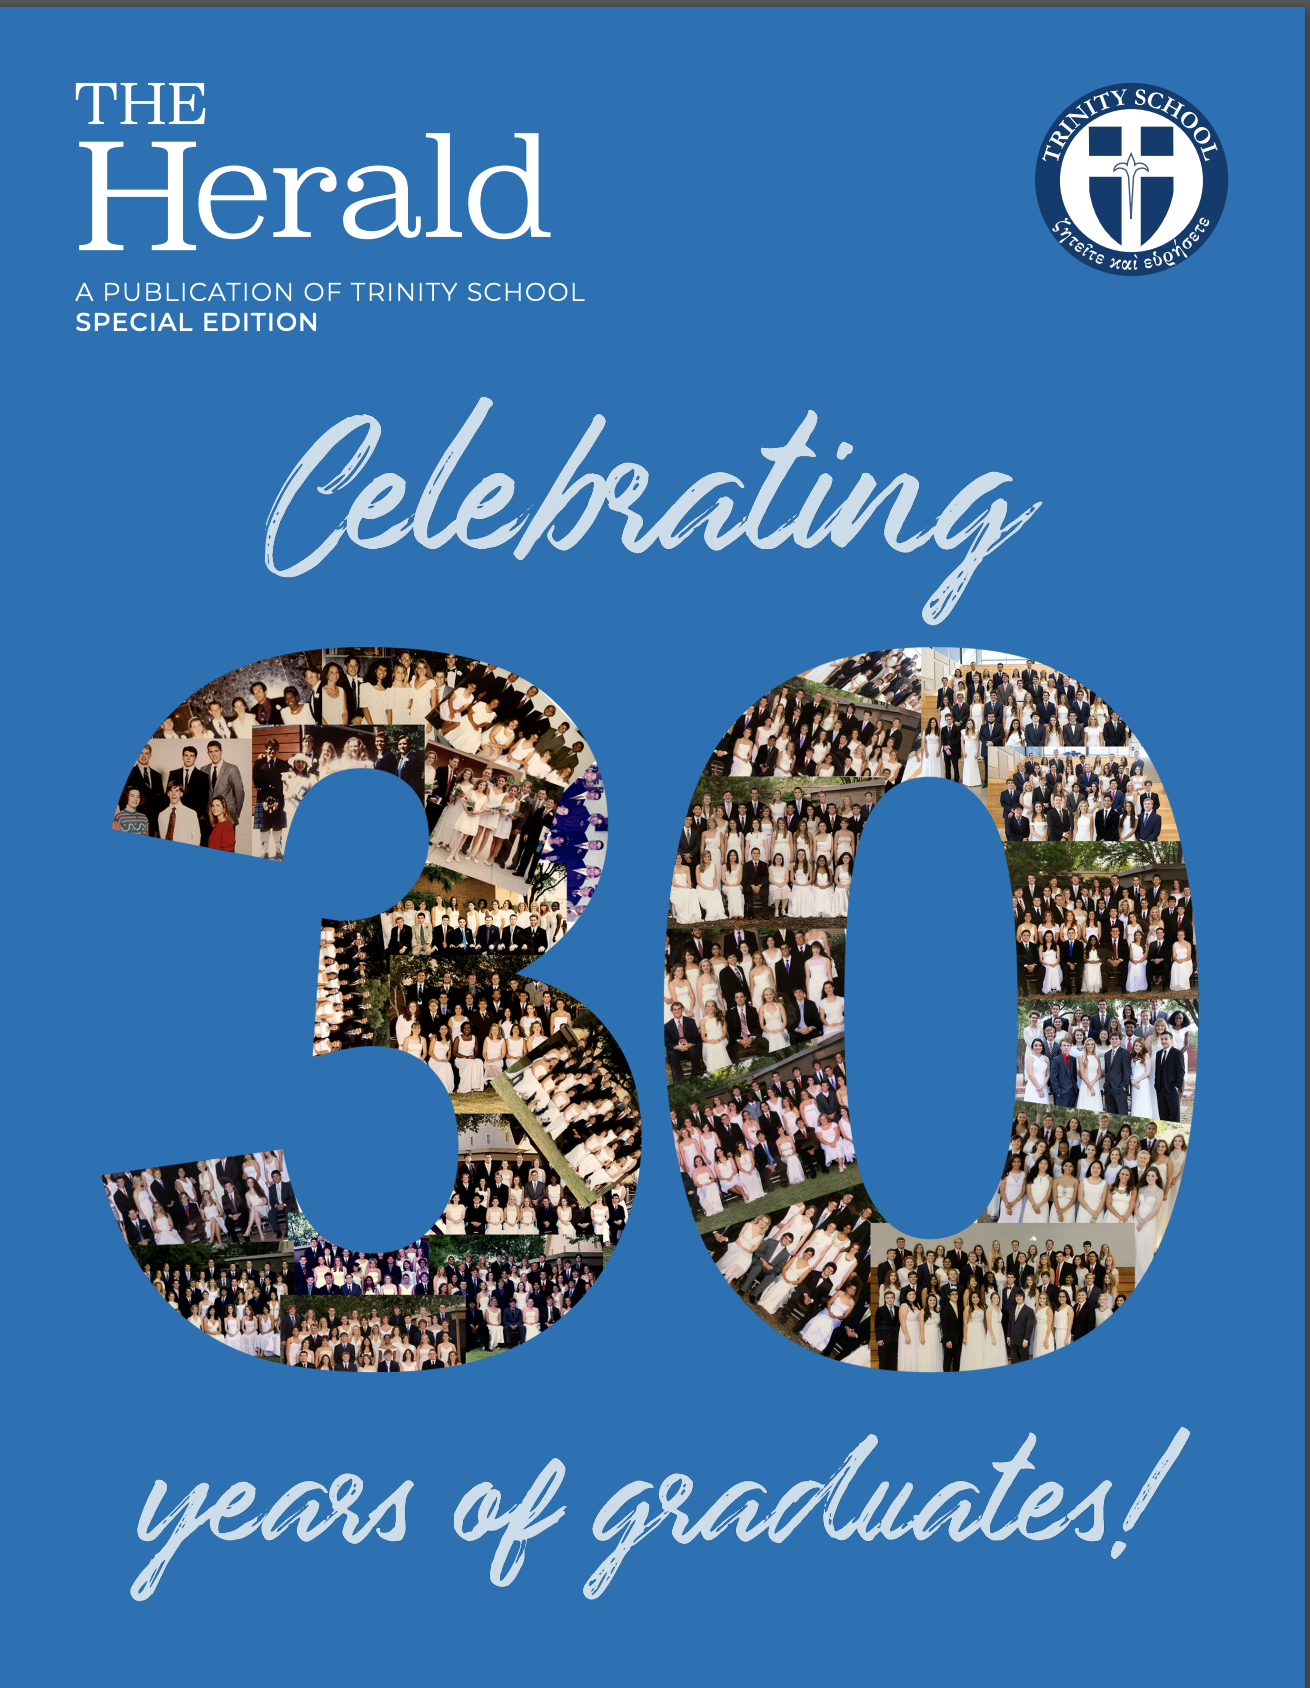 Special edition magazine that feature the last 30 years of graduates from Trinity School of Midland